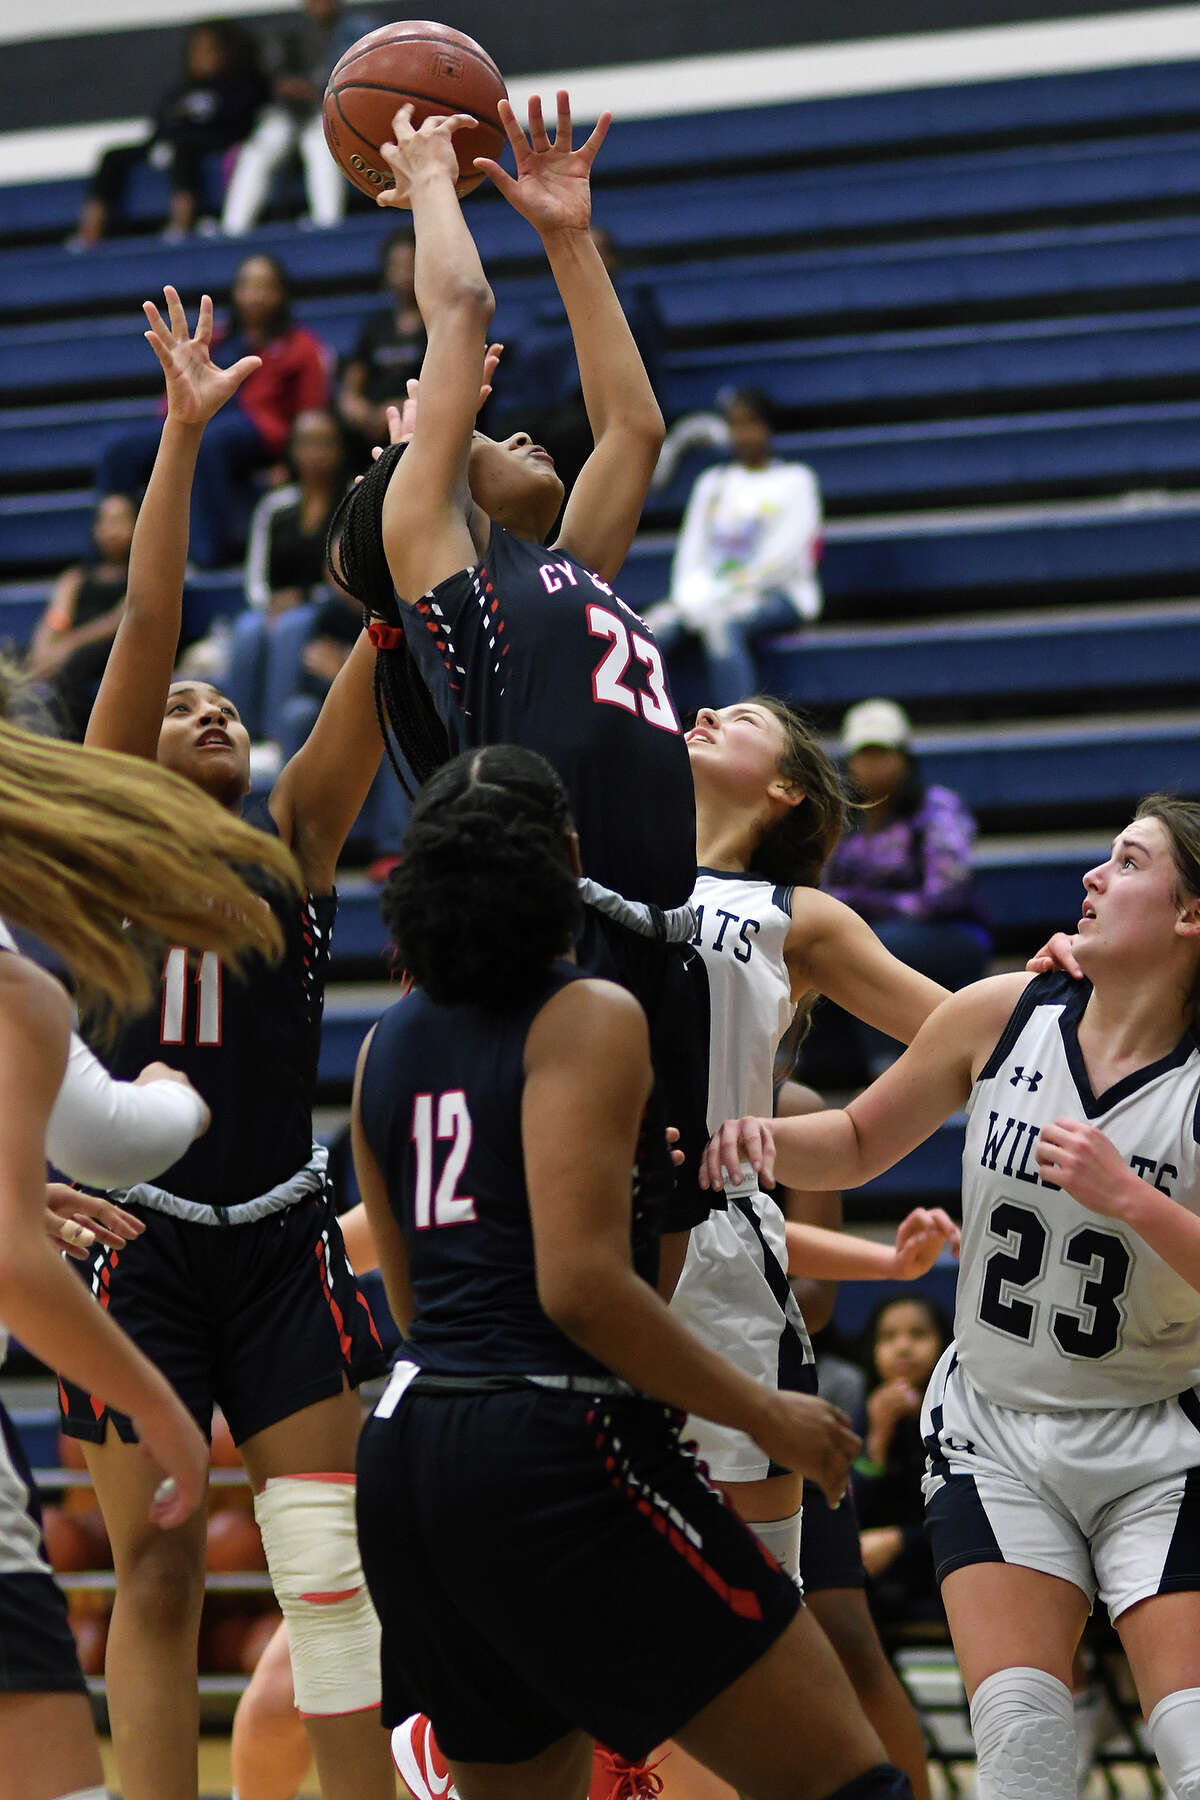 Cy Springs junior forward Aniah Wade (23) skies for a rebound against Tomball Memorial sophomore forward Madyson McMunn (23) during the second quarter of their District 14-6A matchup at TMHS on Jan. 14, 2020.